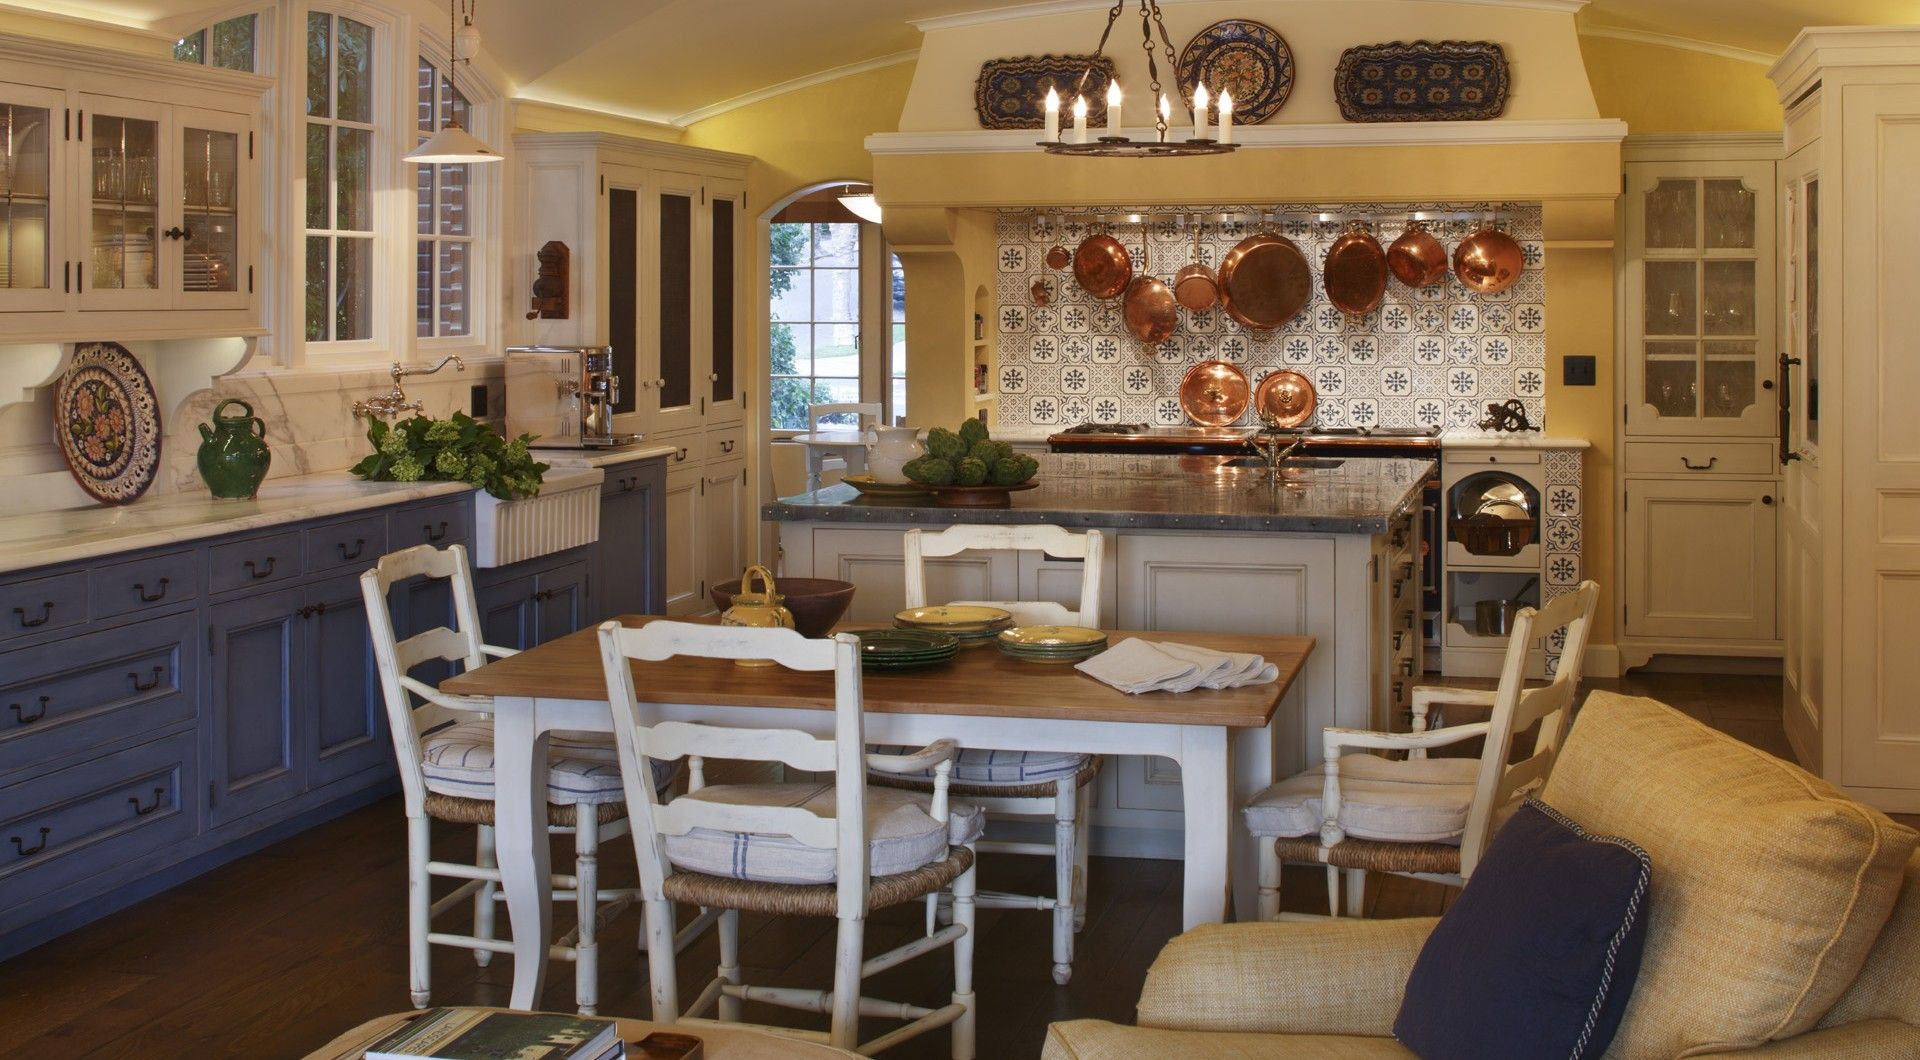 French victorian kitchen pictures french country for Kitchen cabinets french country style